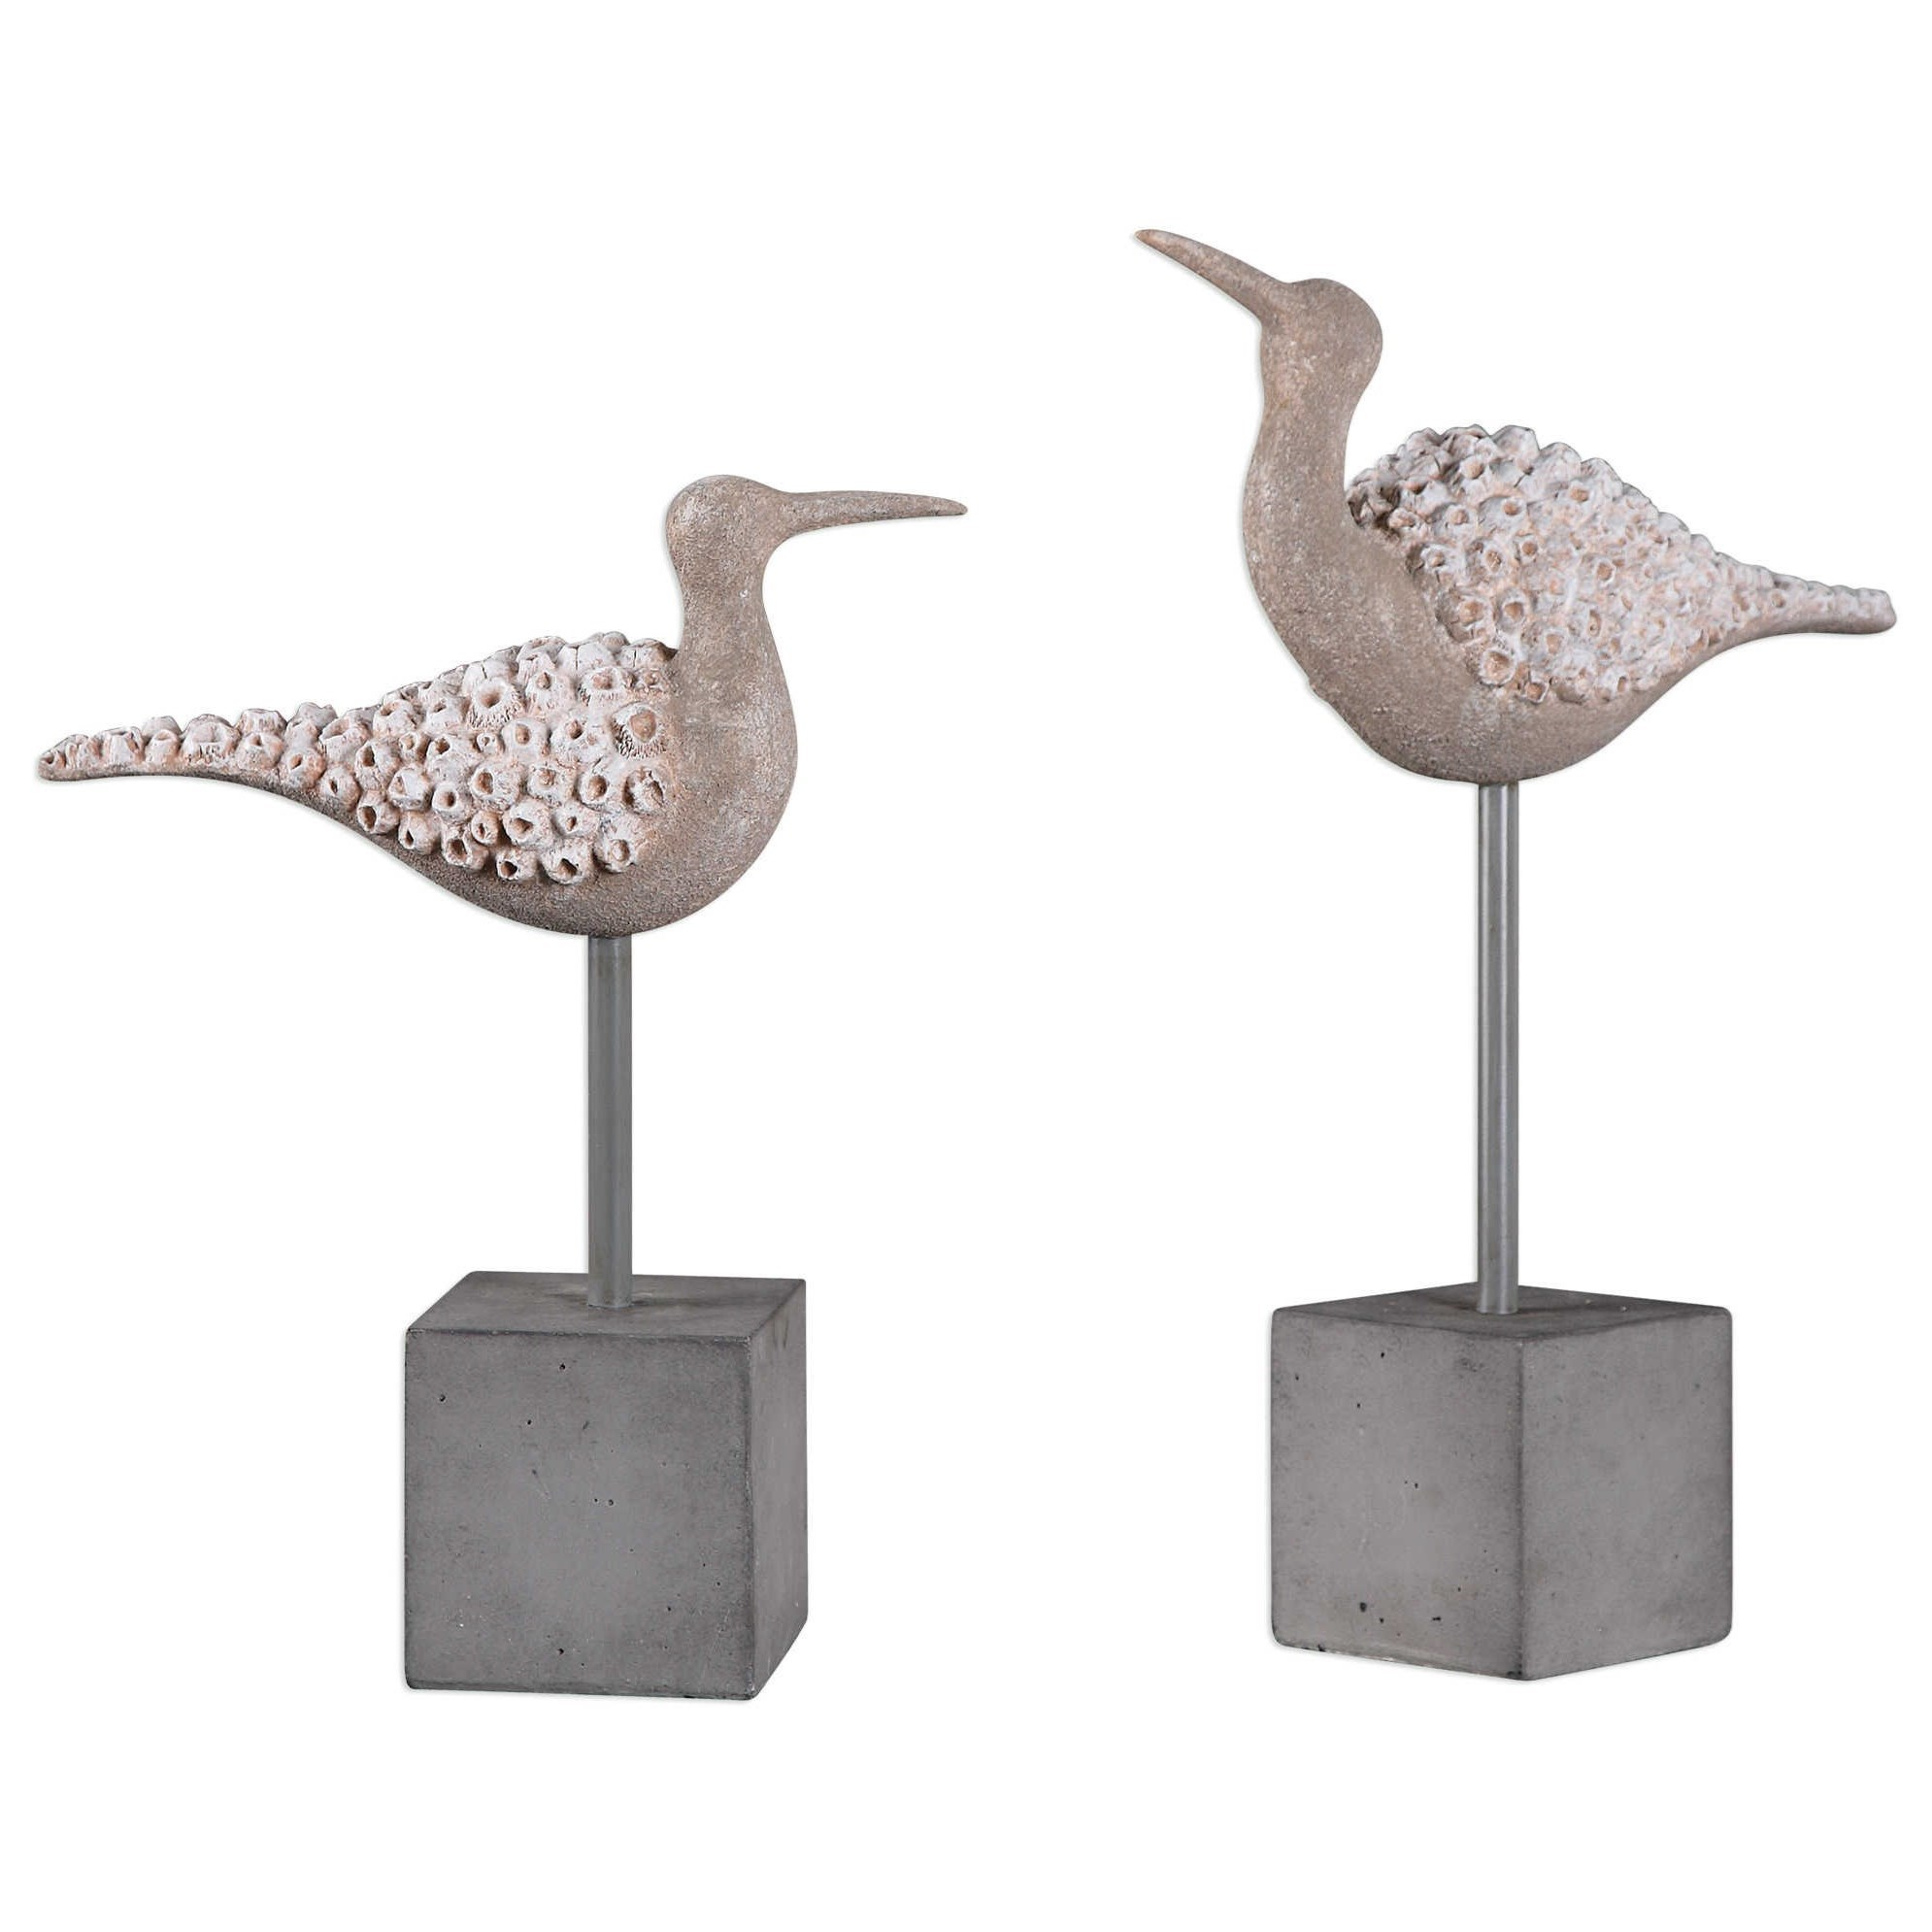 Uttermost Accessories Shore Birds Sculpture (Set of 2) - Item Number: 20216